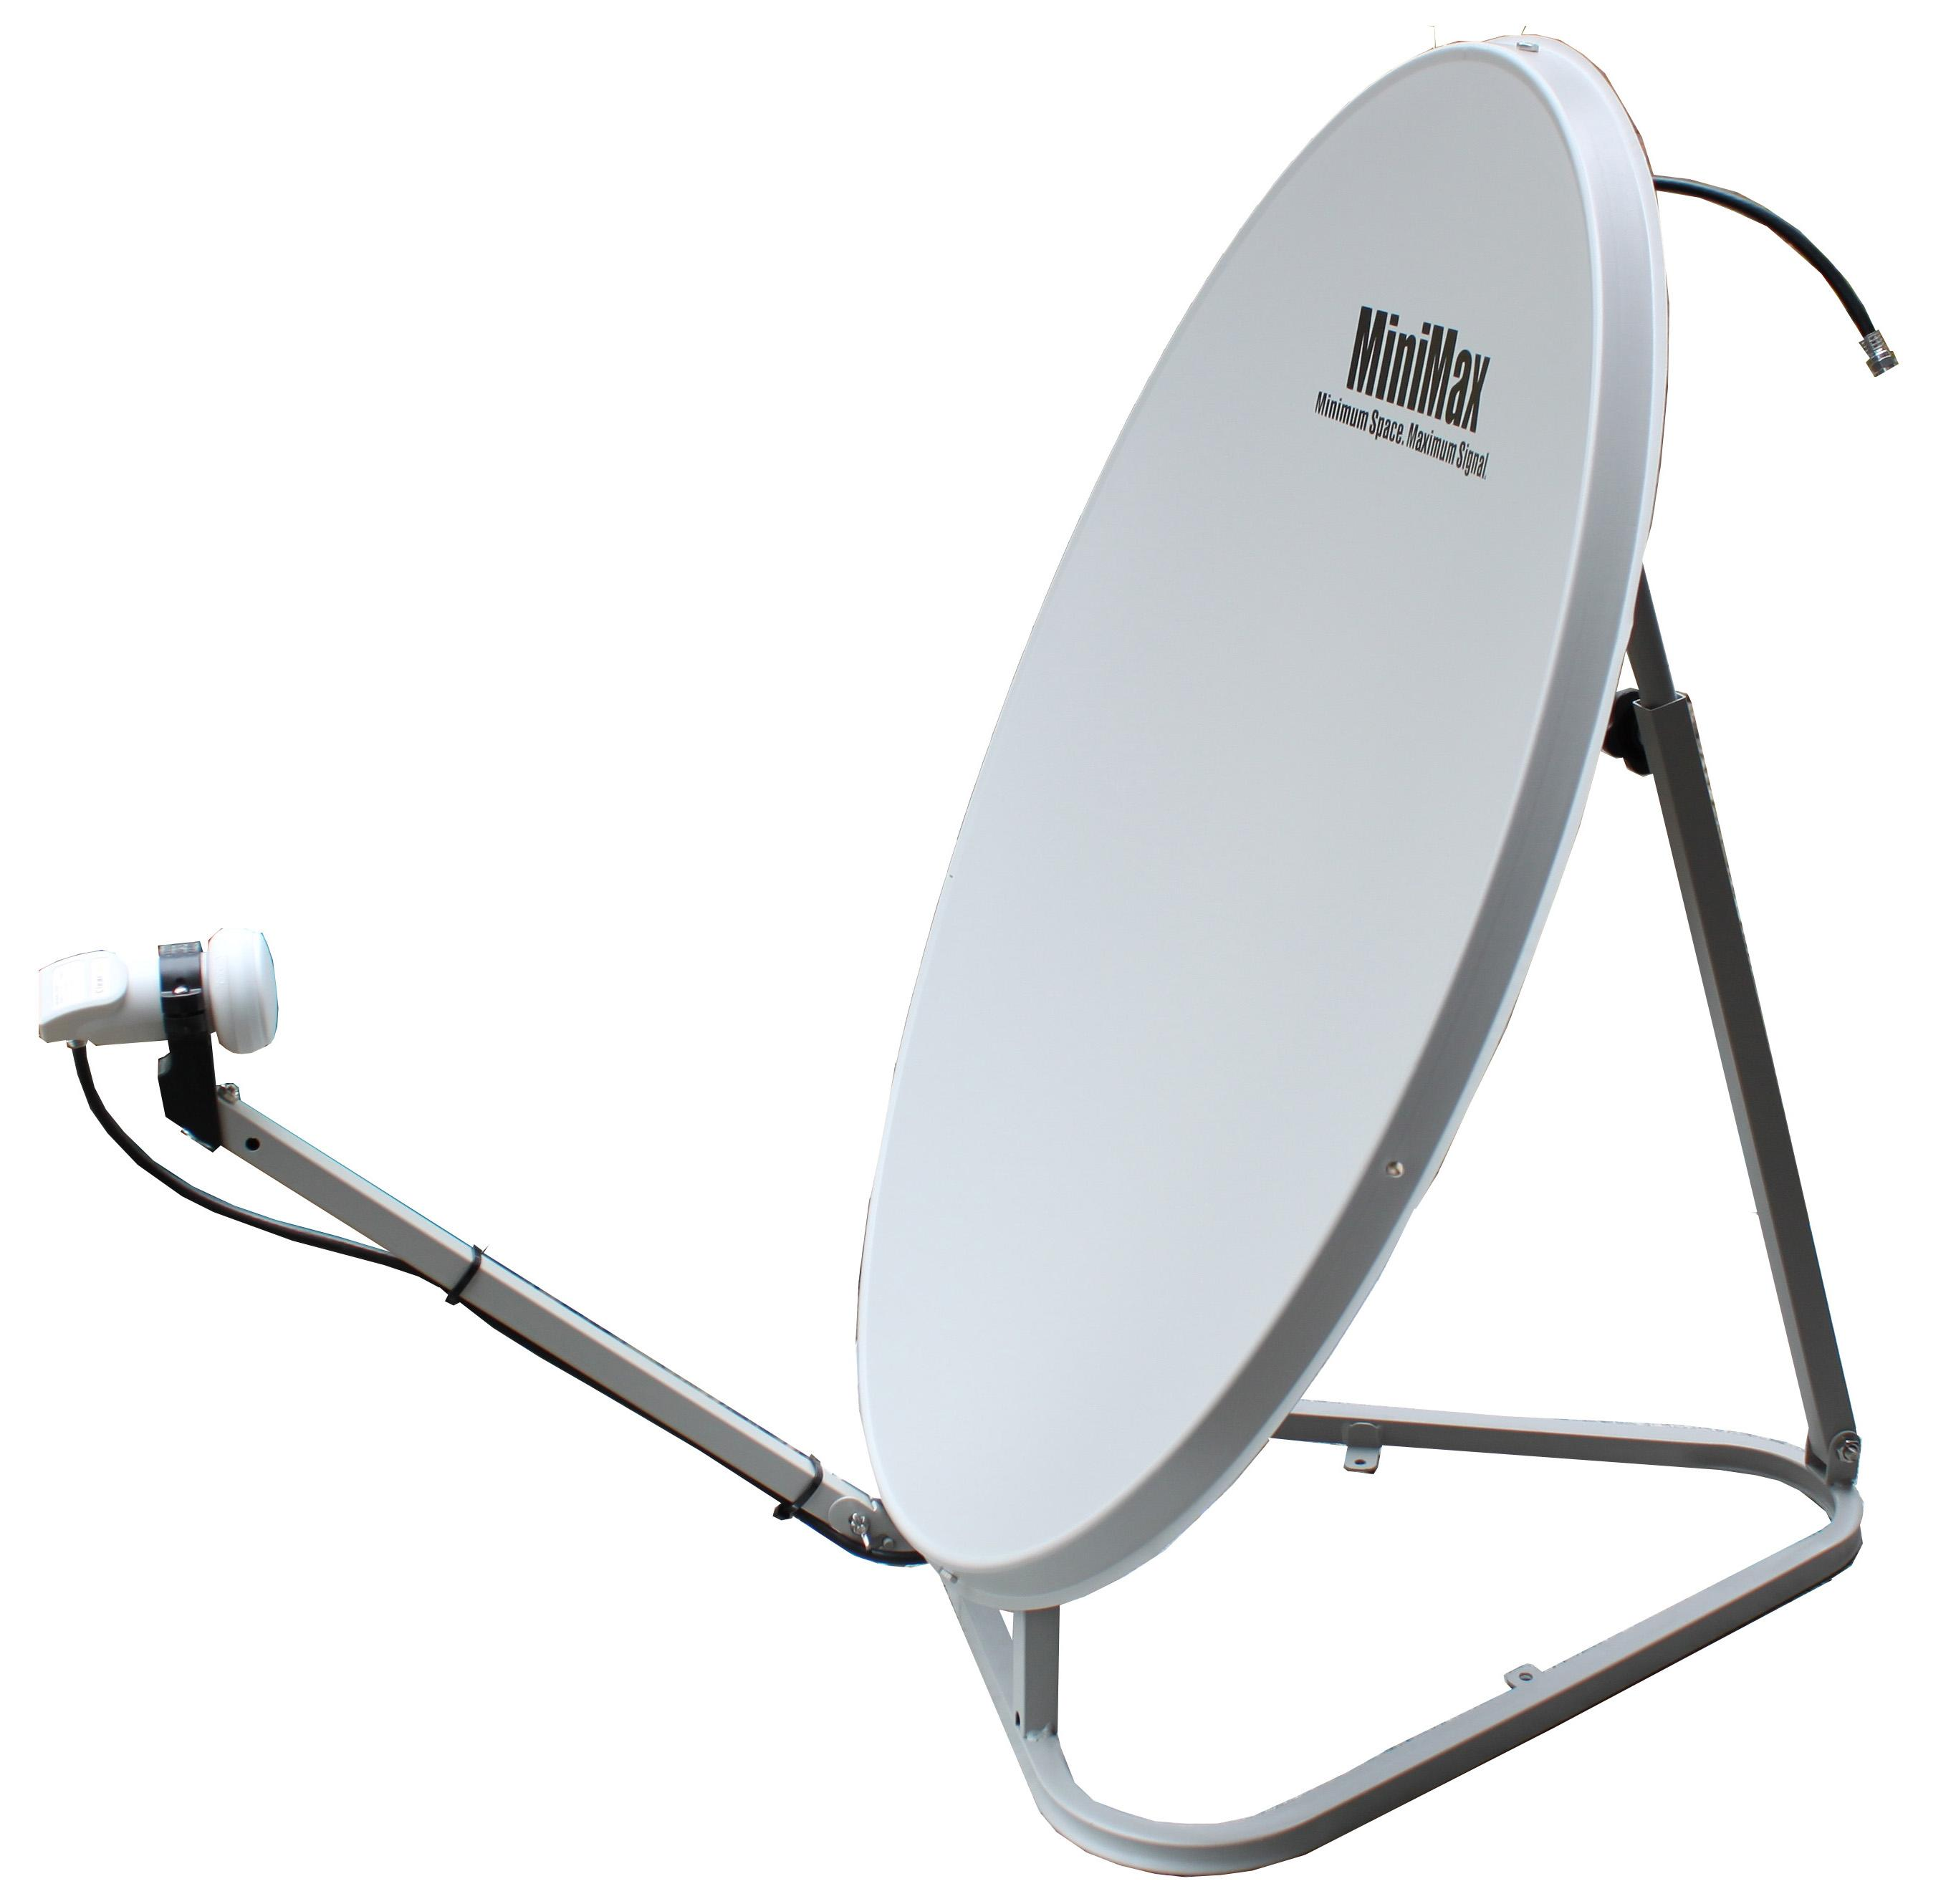 cable tv dish antenna clipart best. Black Bedroom Furniture Sets. Home Design Ideas